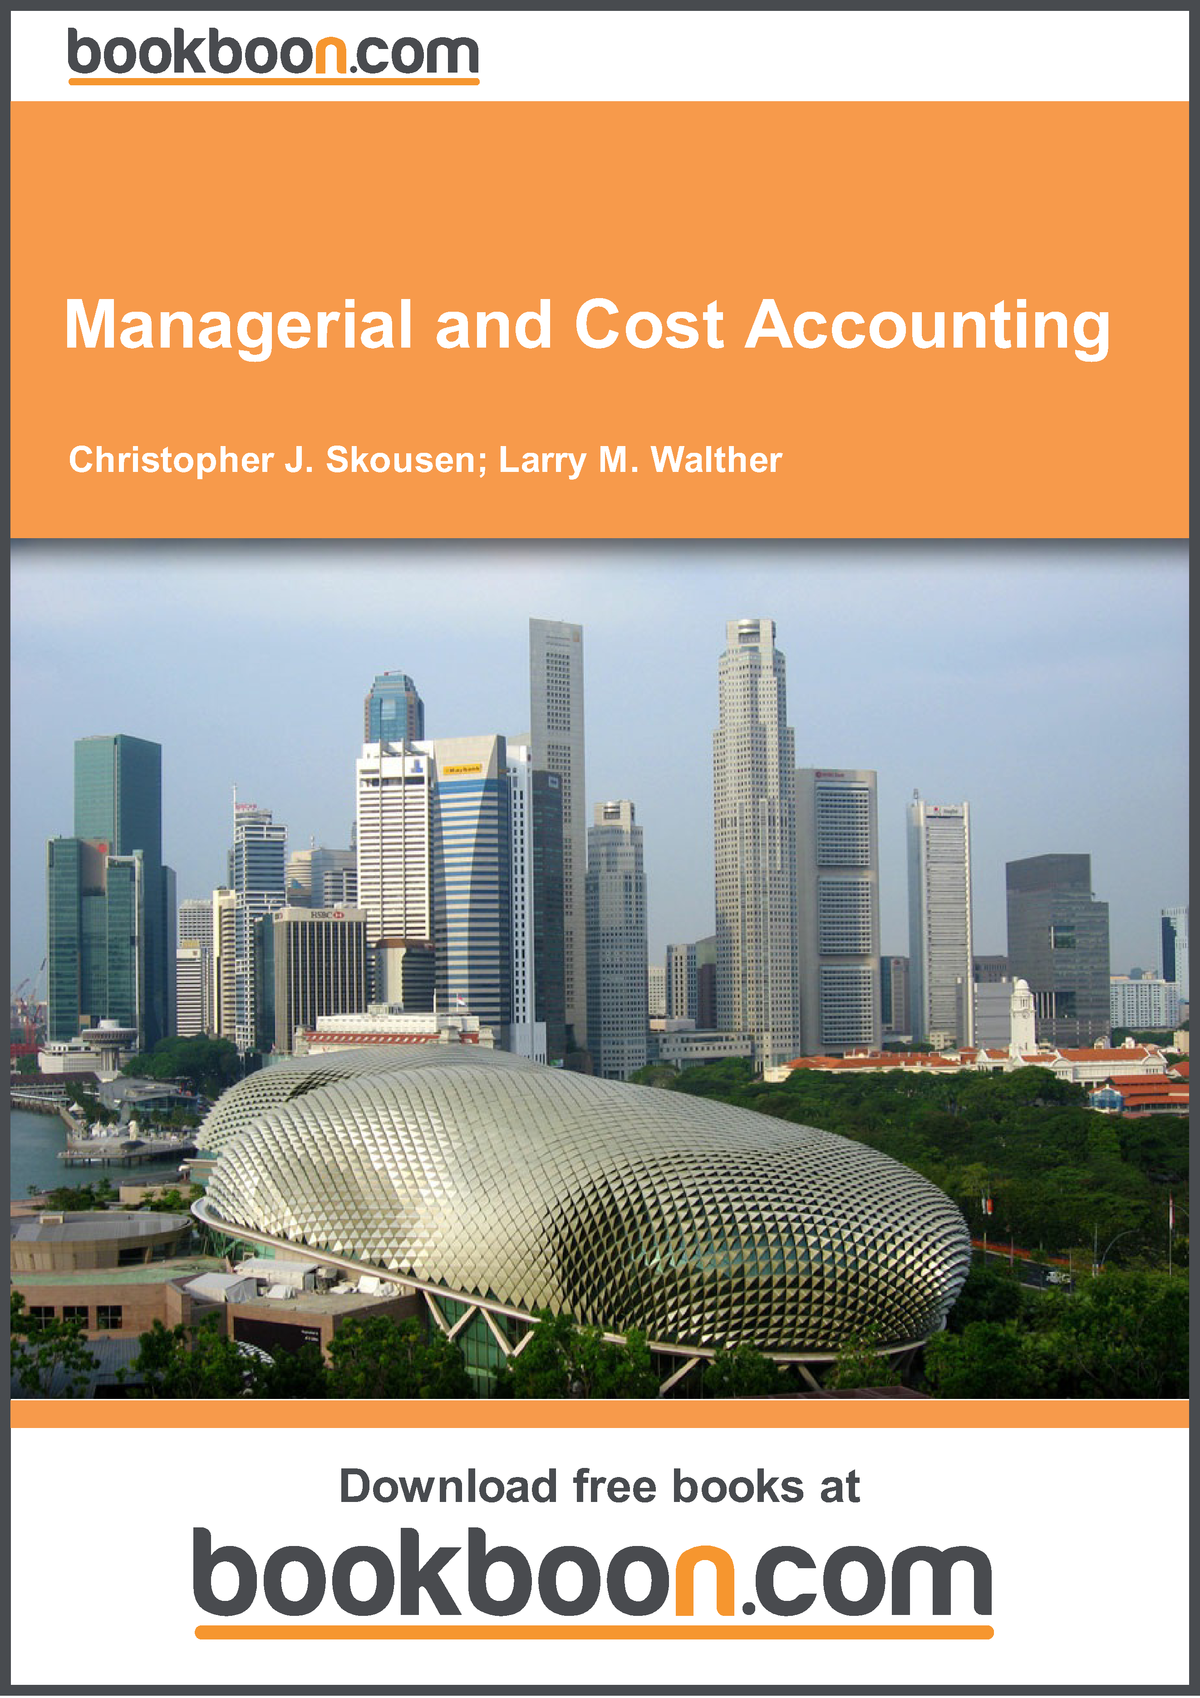 Managerial and Cost Accounting - acct302: Financial Accounting - StuDocu